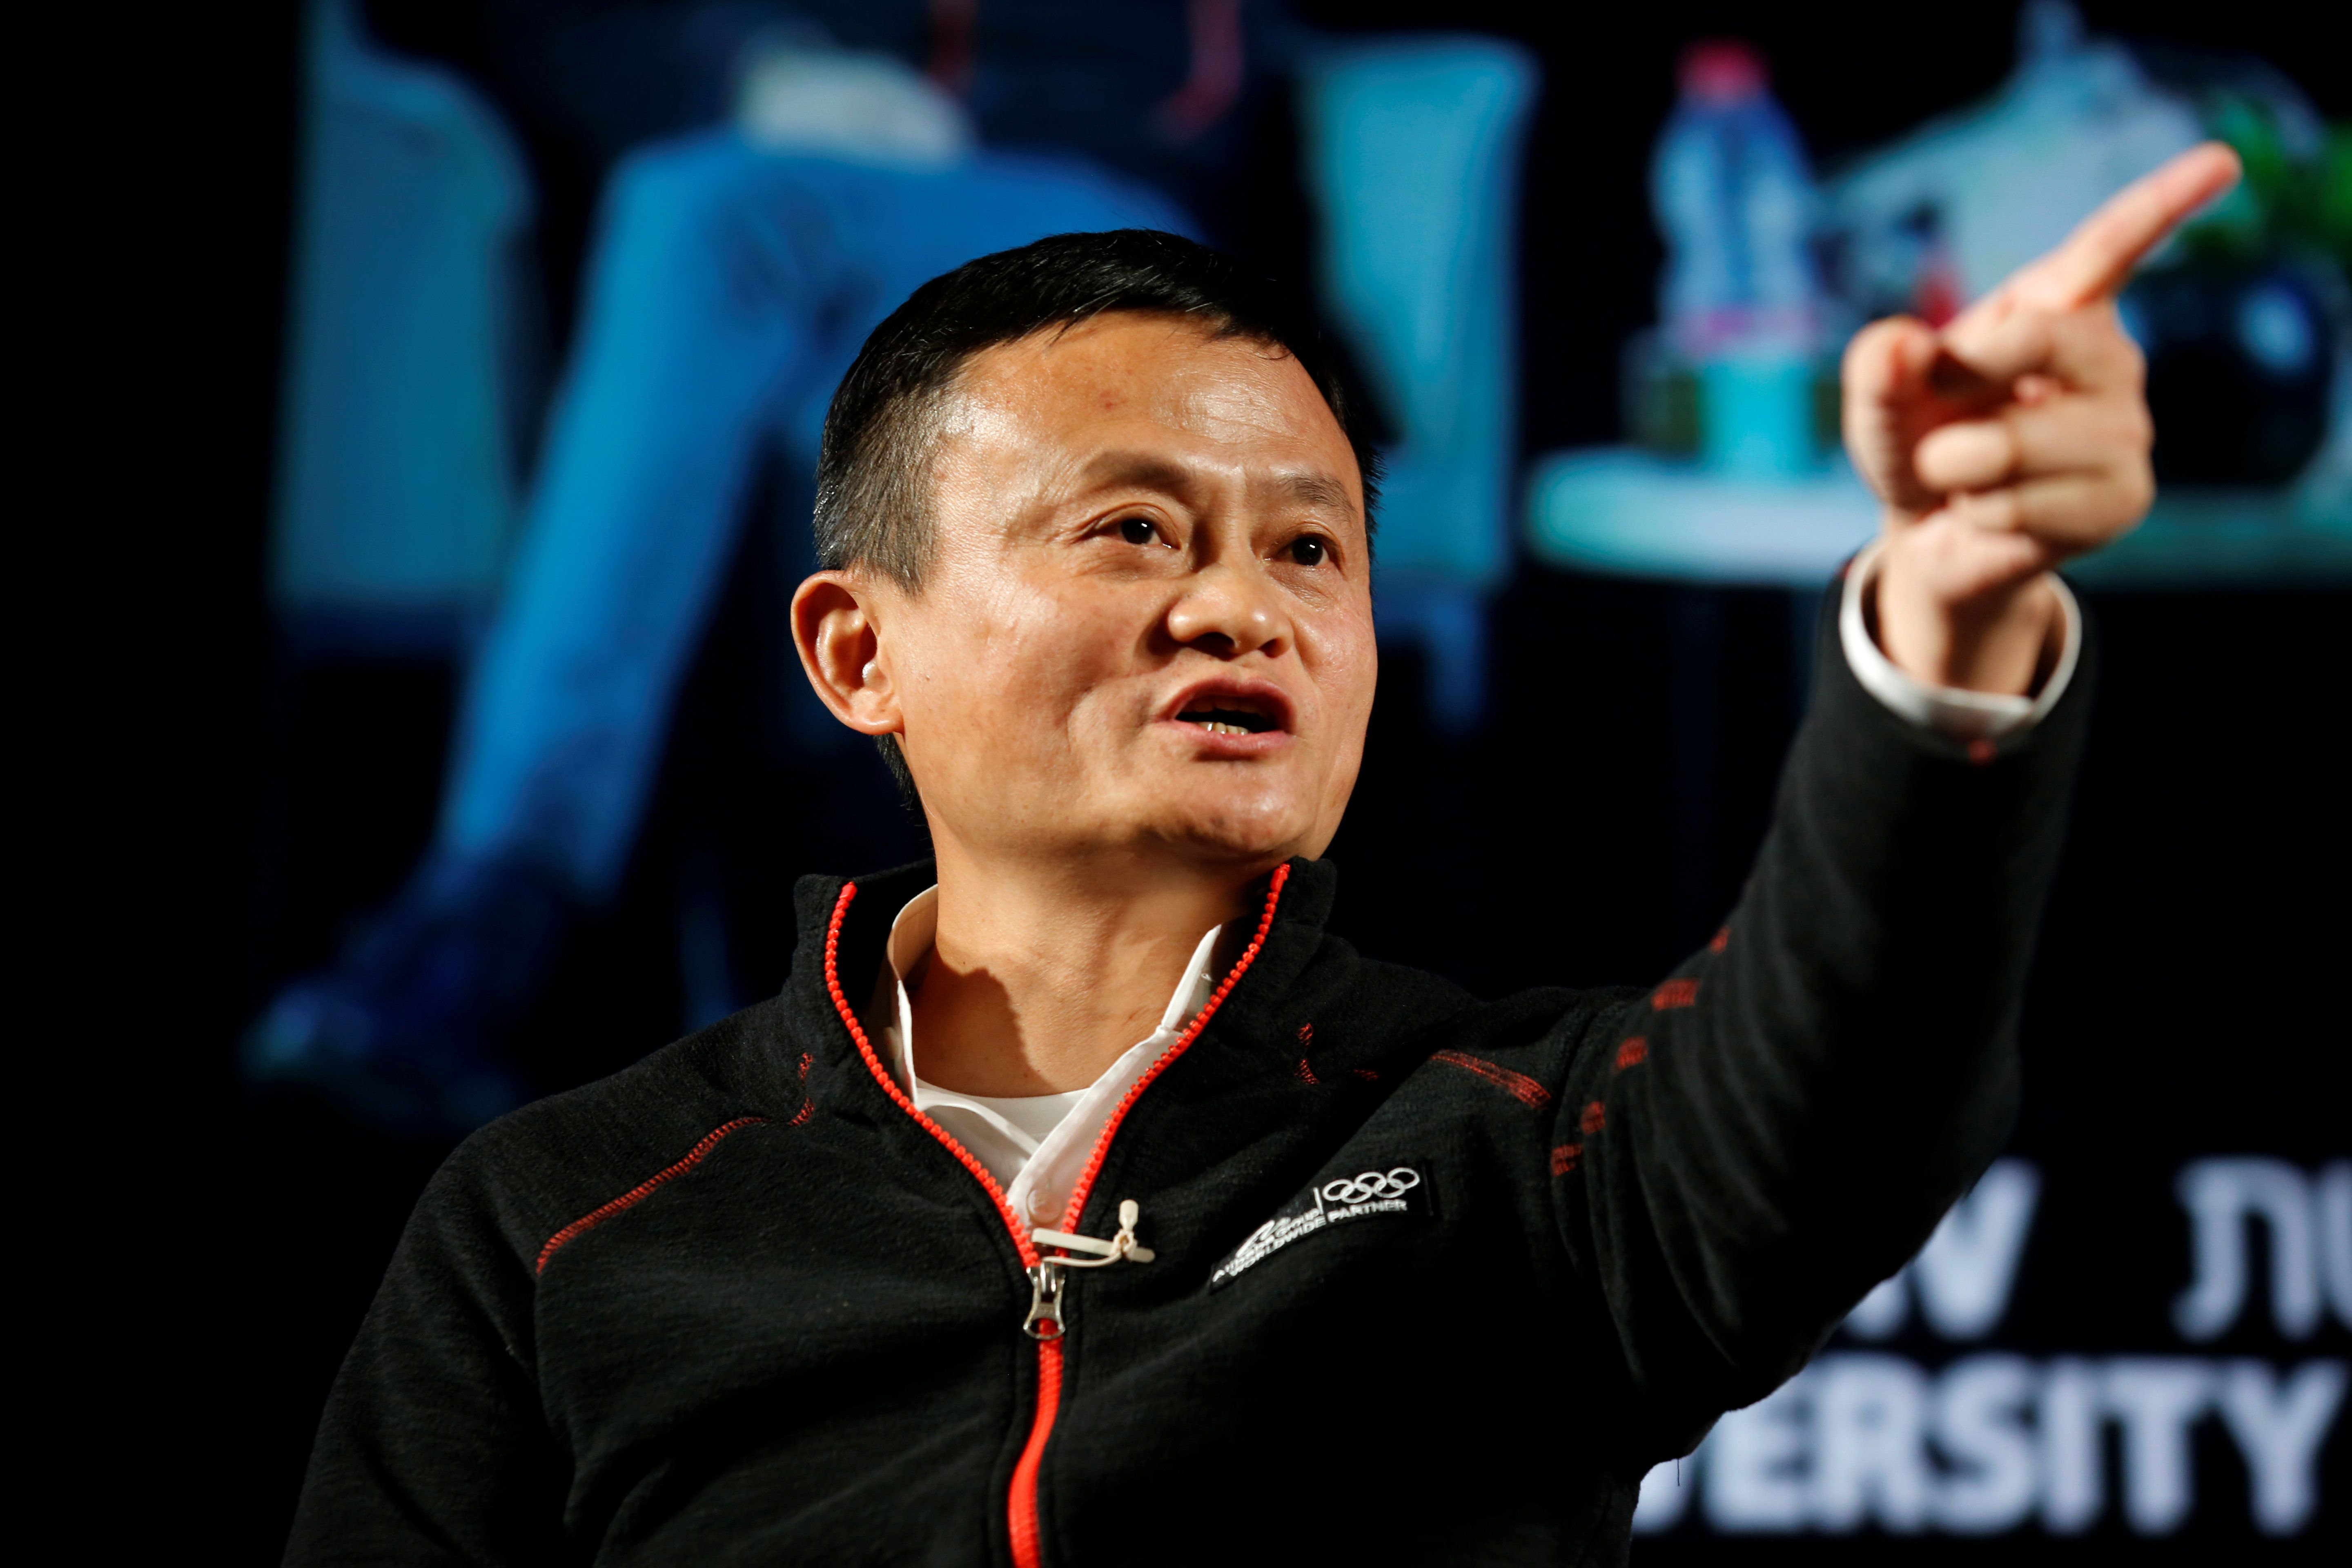 Alibaba Backpedals On Promise To Bring 1 Million Jobs To U.S., Blames Trump Tariff